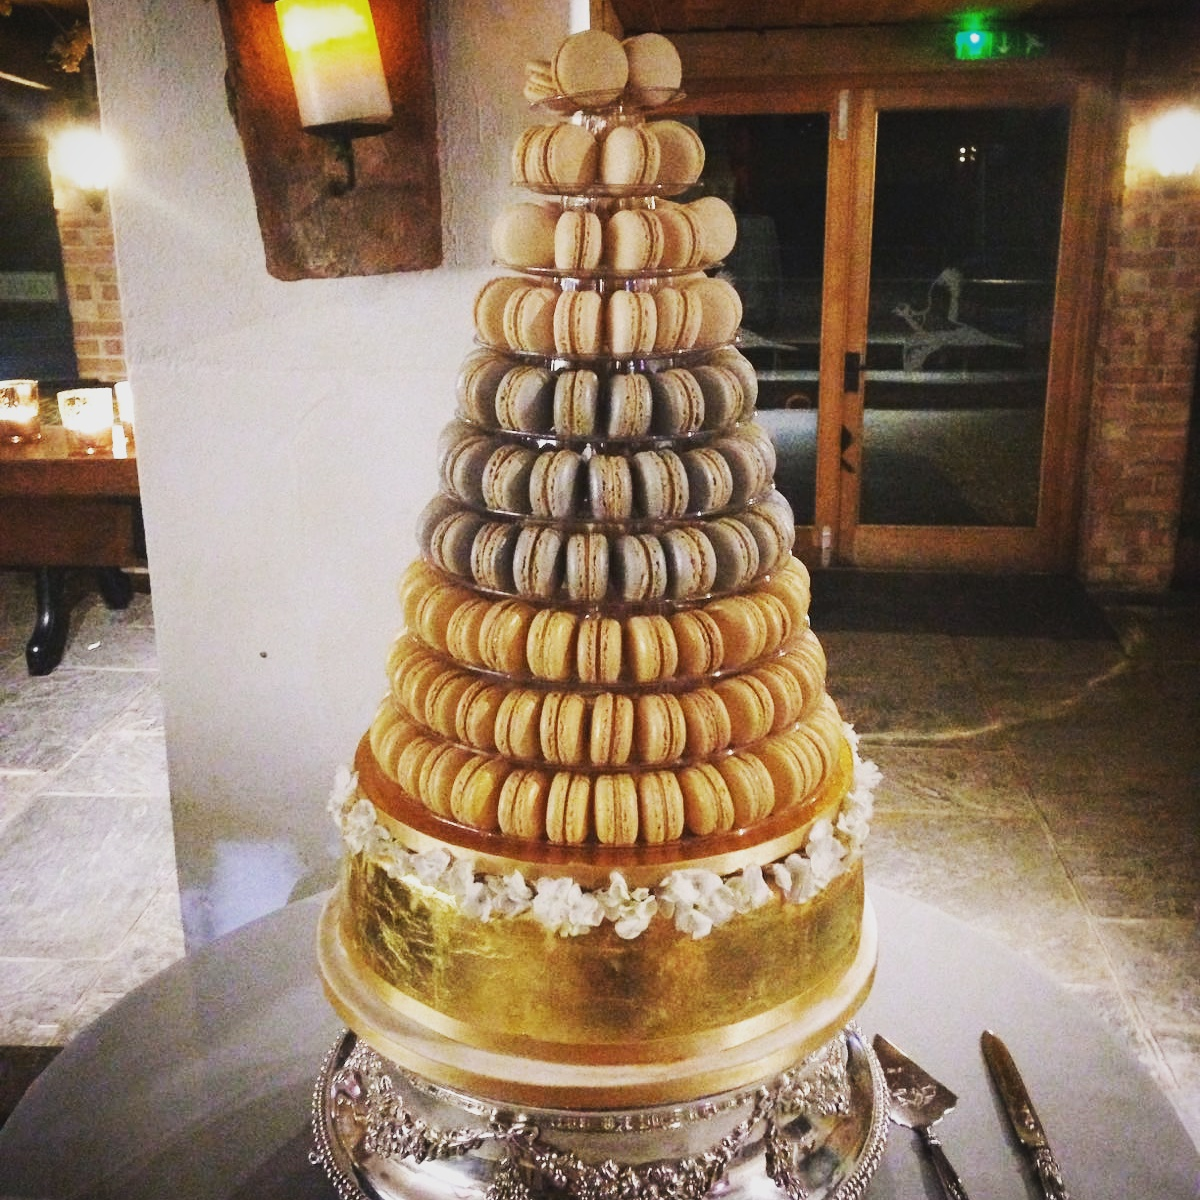 Macaron tower on gold painted cake